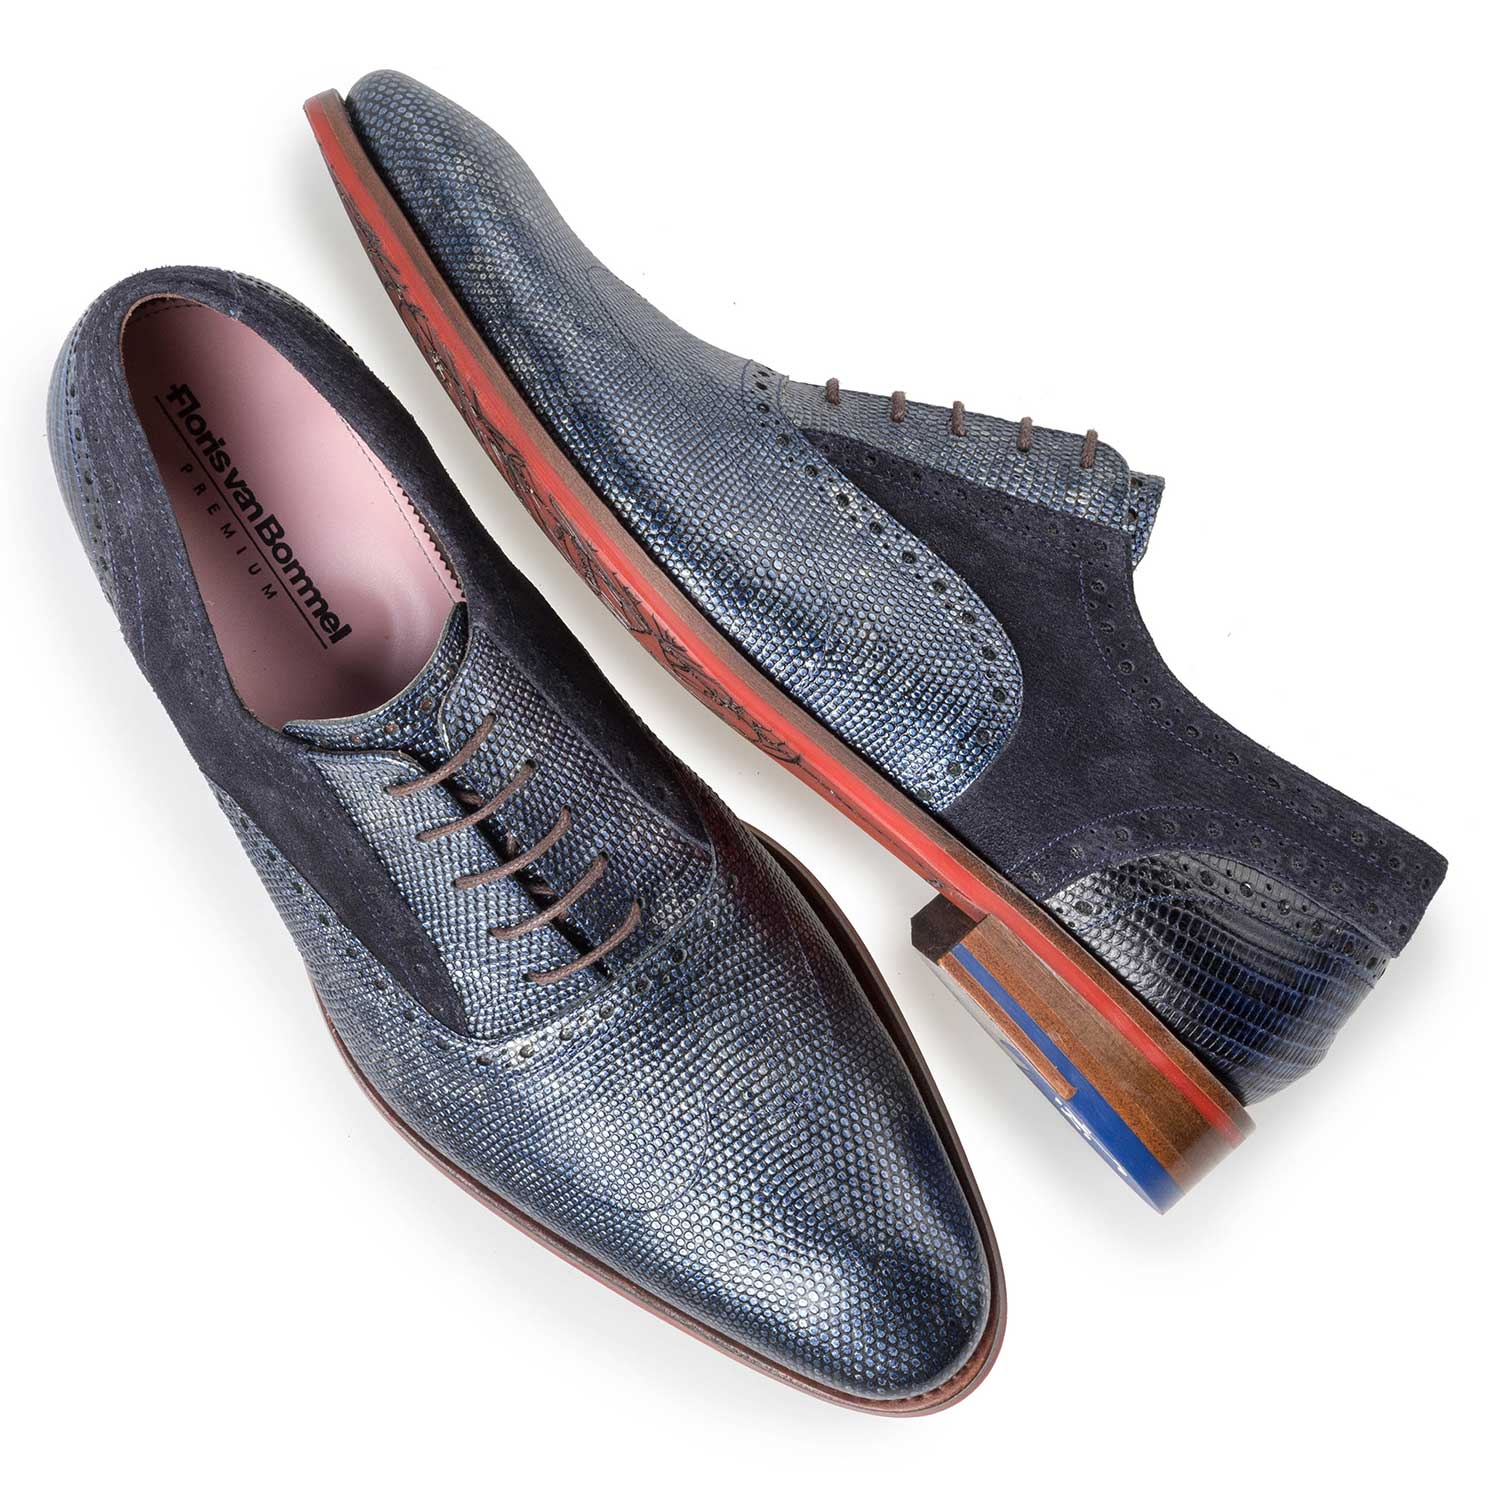 19117/02 - Blue Premium calf leather lace shoe